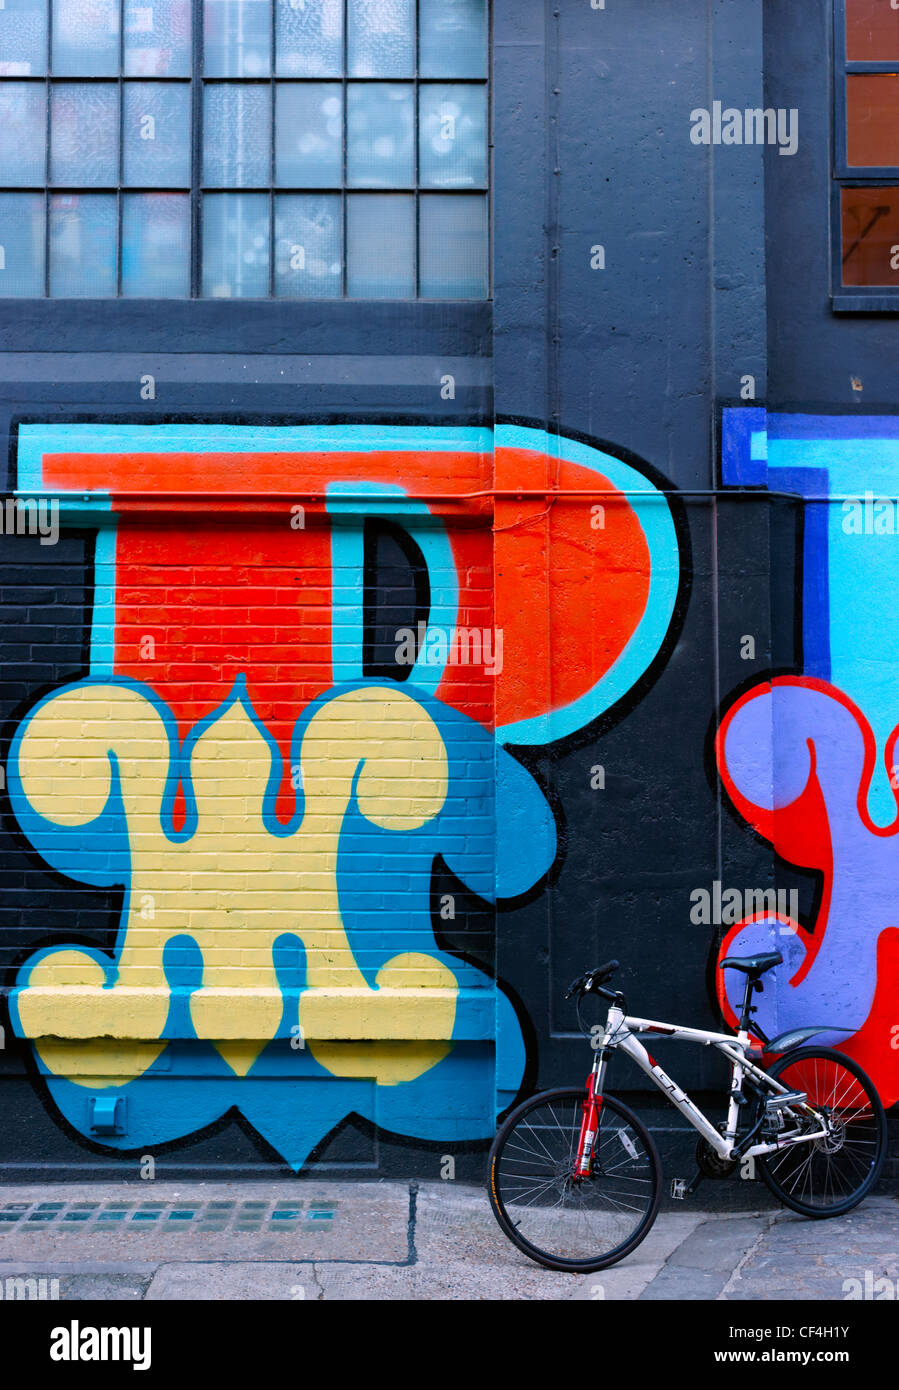 Street art on a building in Ebor Street in the east end of London. Stock Photo